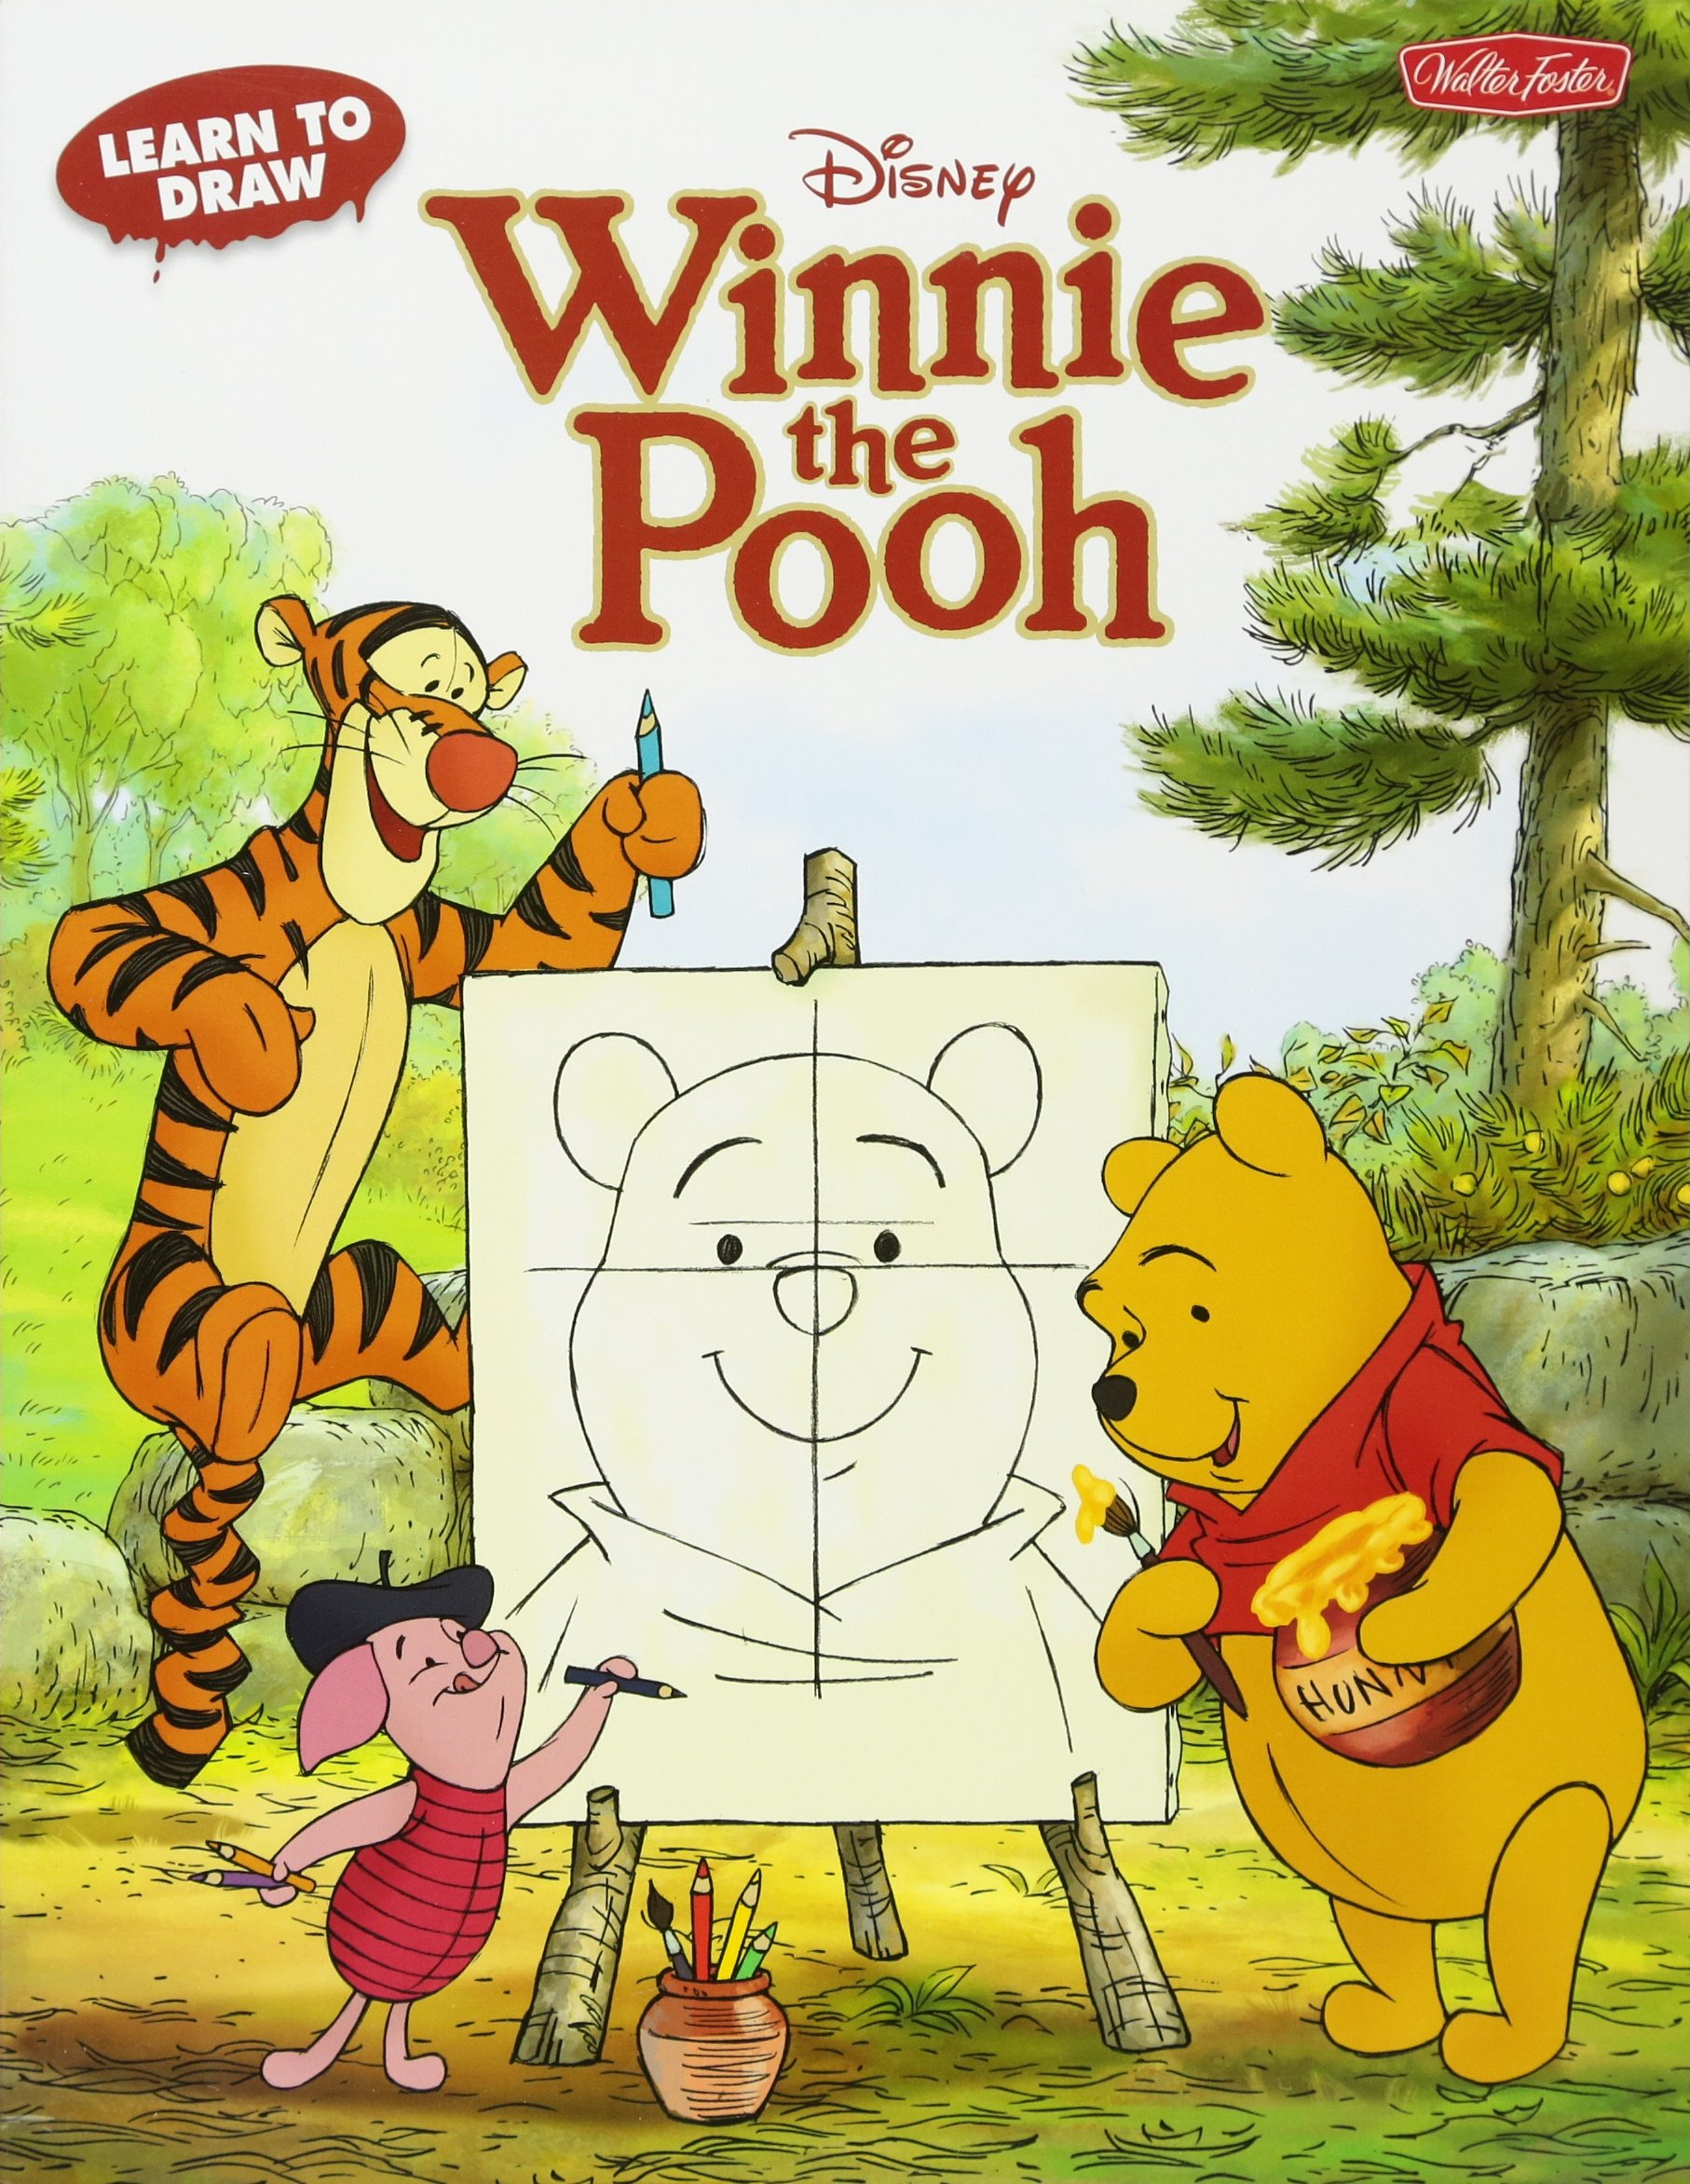 Learn To Draw Disney S Winnie The Pooh Featuring Tigger Eeyore